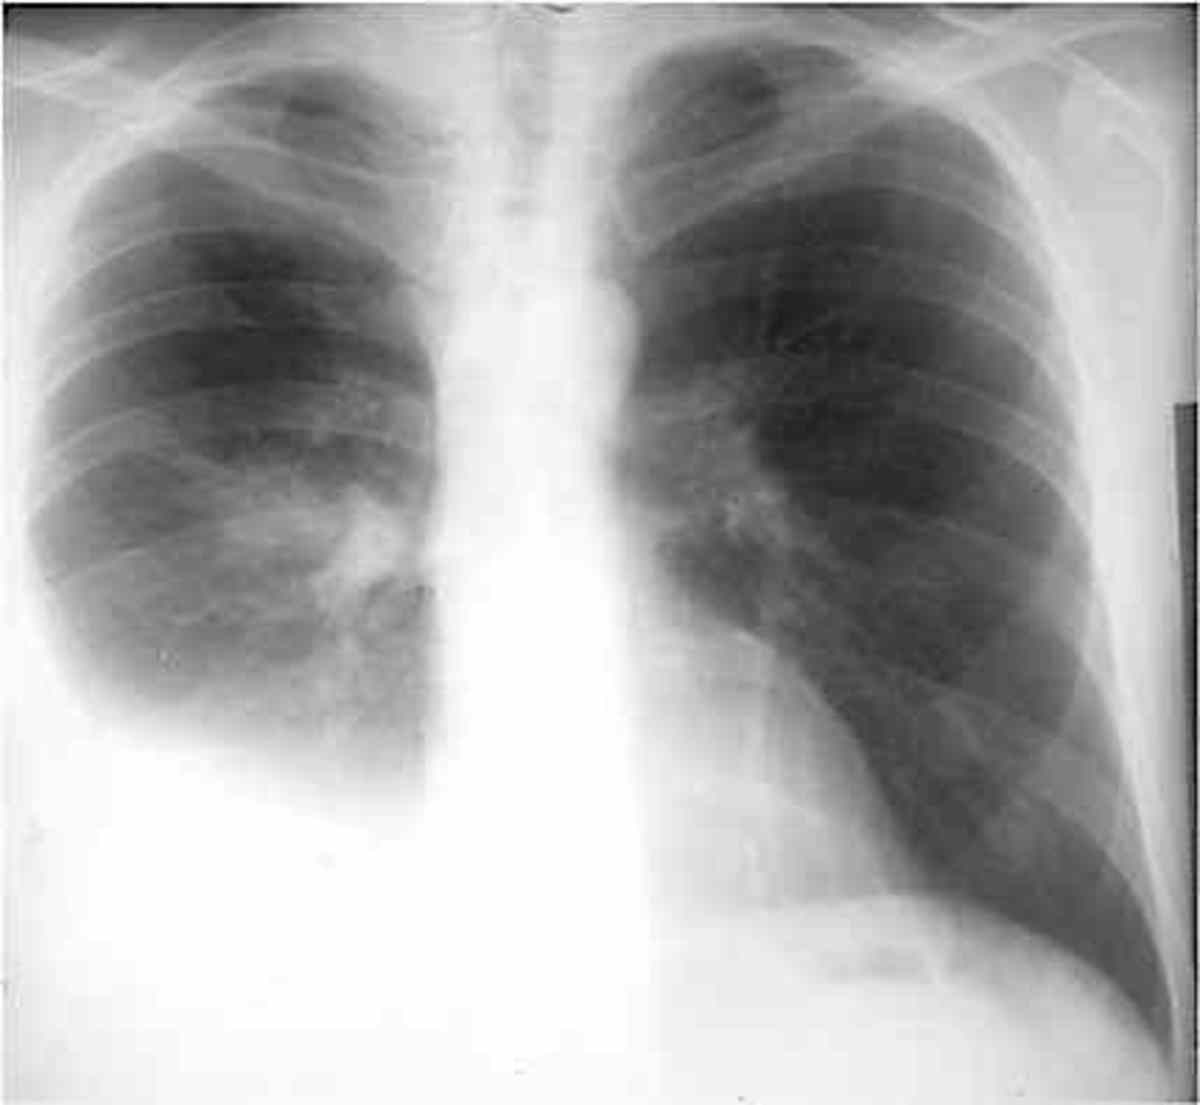 Sometimes air comes in through the needle or the needle makes a hole in the lung. Usually, a hole will seal itself. But sometimes air can build up around the lung and make it collapse.